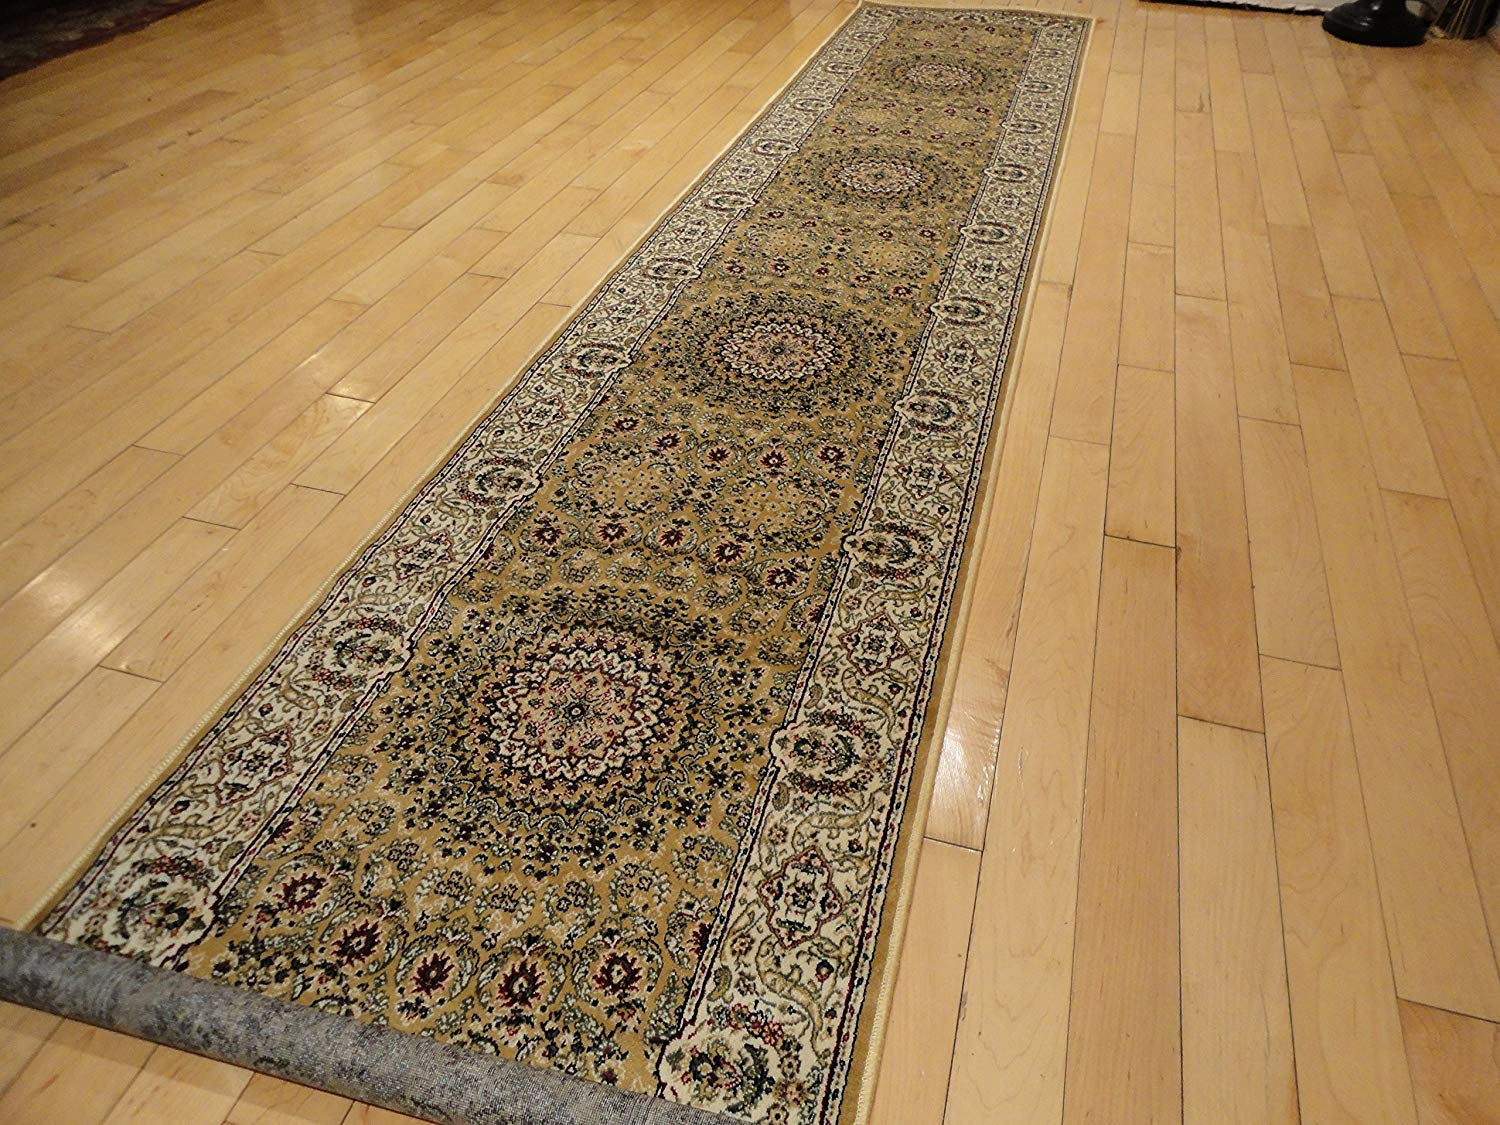 runner rugs amazon.com: new silk persian 2x12 hallway runner gold long runners for  stairs AVUYDZH